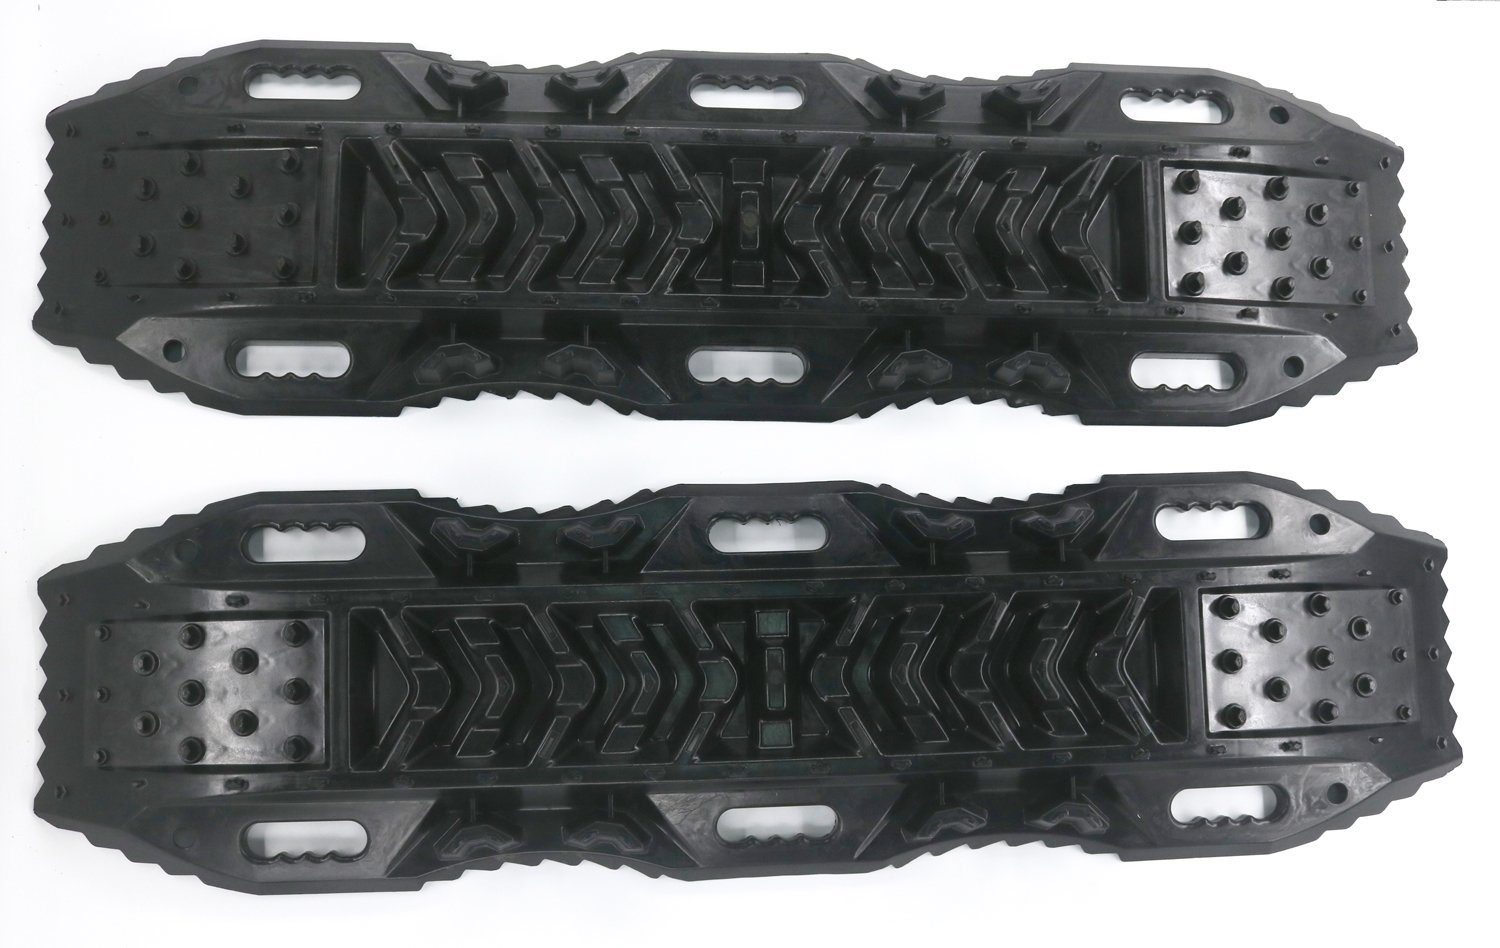 2 Pack RUGCEL Recovery Traction Mat Offroad Black Tracks Sand Snow Tire Ladder 4WD Track